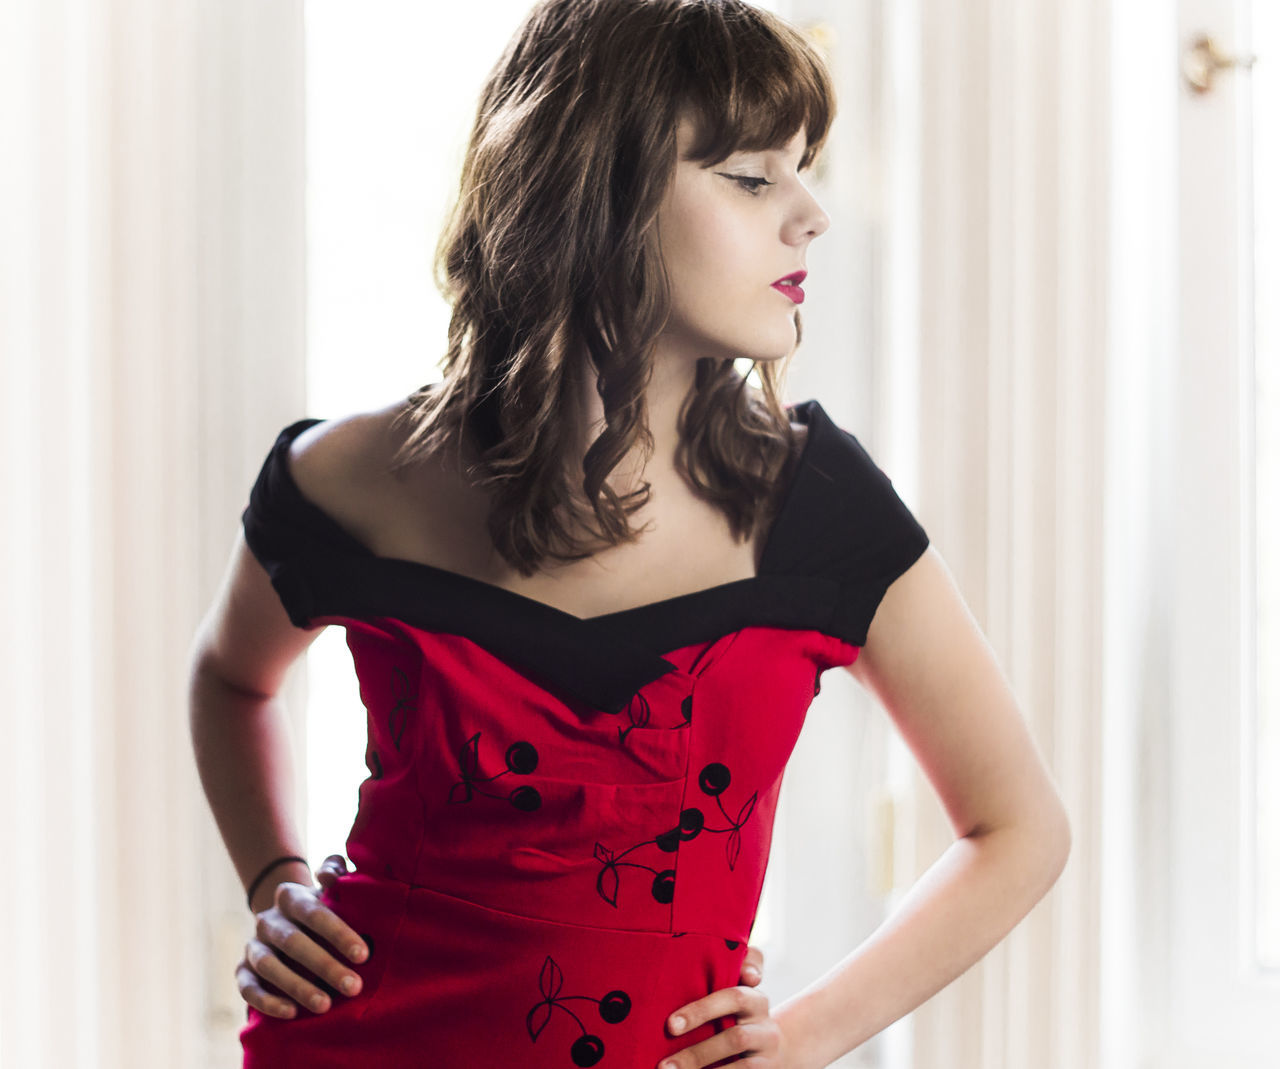 Adult Beautiful People Beautiful Woman Beauty Black And Red Black Dress Fashion Girl Hands On Hips Natural Light Natural Light Portrait One Person One Woman Only One Young Woman Only Pin Up Portrait Red Red Dress Standing Window Young Adult Young Women